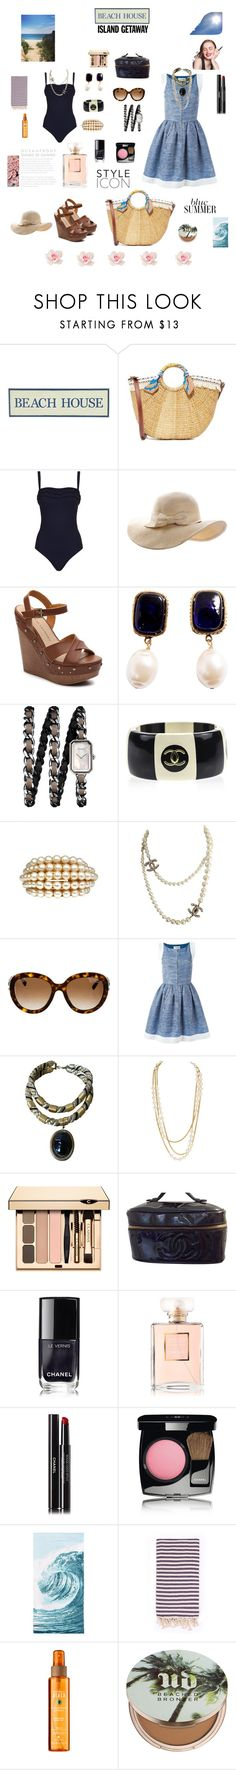 """Chic Island"" by alexandra-rataplan ❤ liked on Polyvore featuring Pier 1 Imports, Sam Edelman, SHAN, Chinese Laundry, Chanel, PBteen, Turkish-T and Urban Decay"